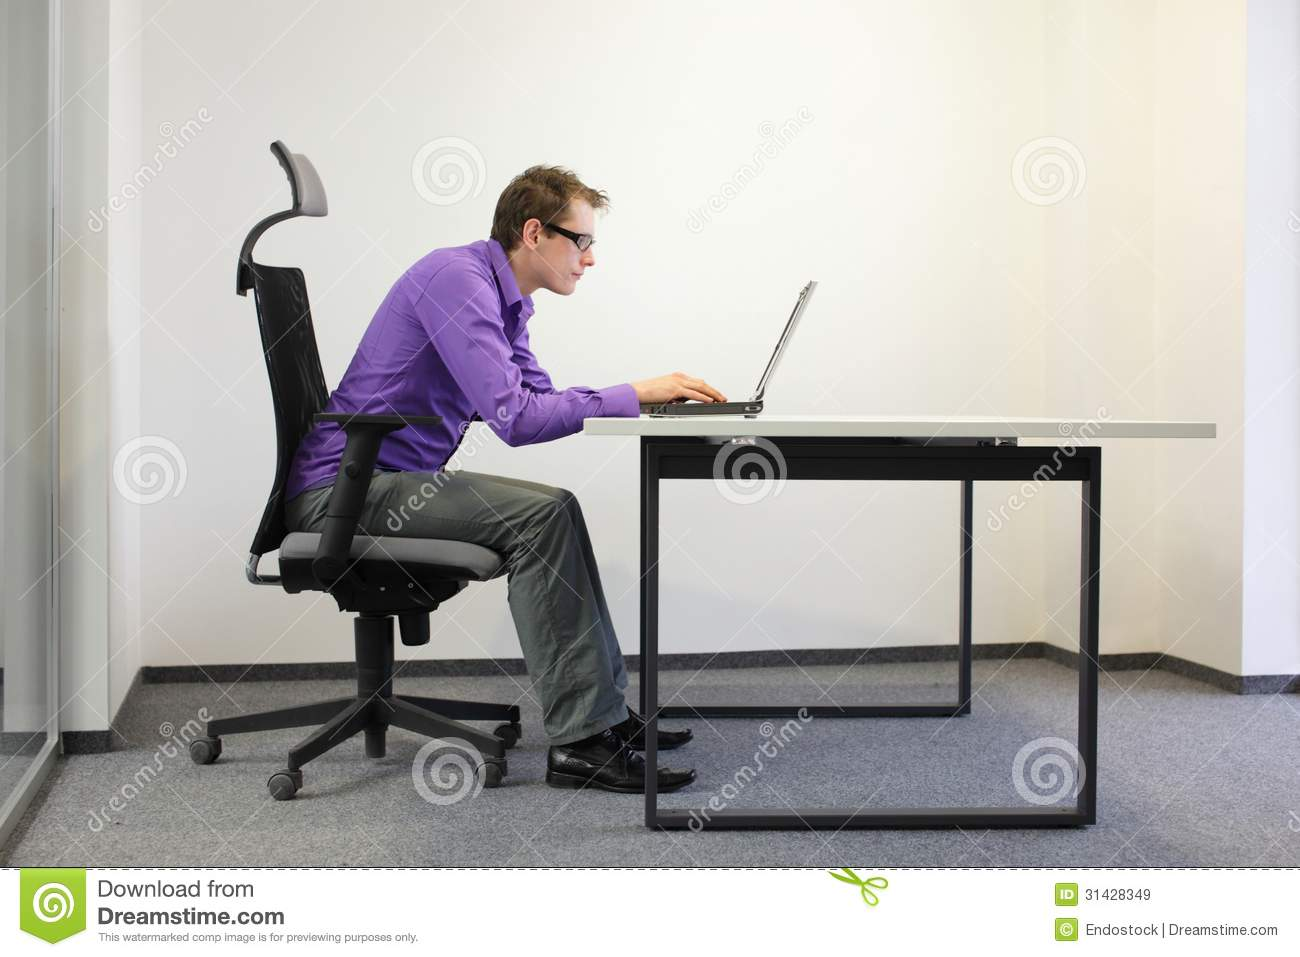 Shortsighted Businessman Bad Sitting Posture At Laptop Royalty Free Stock Images - Image: 31428349